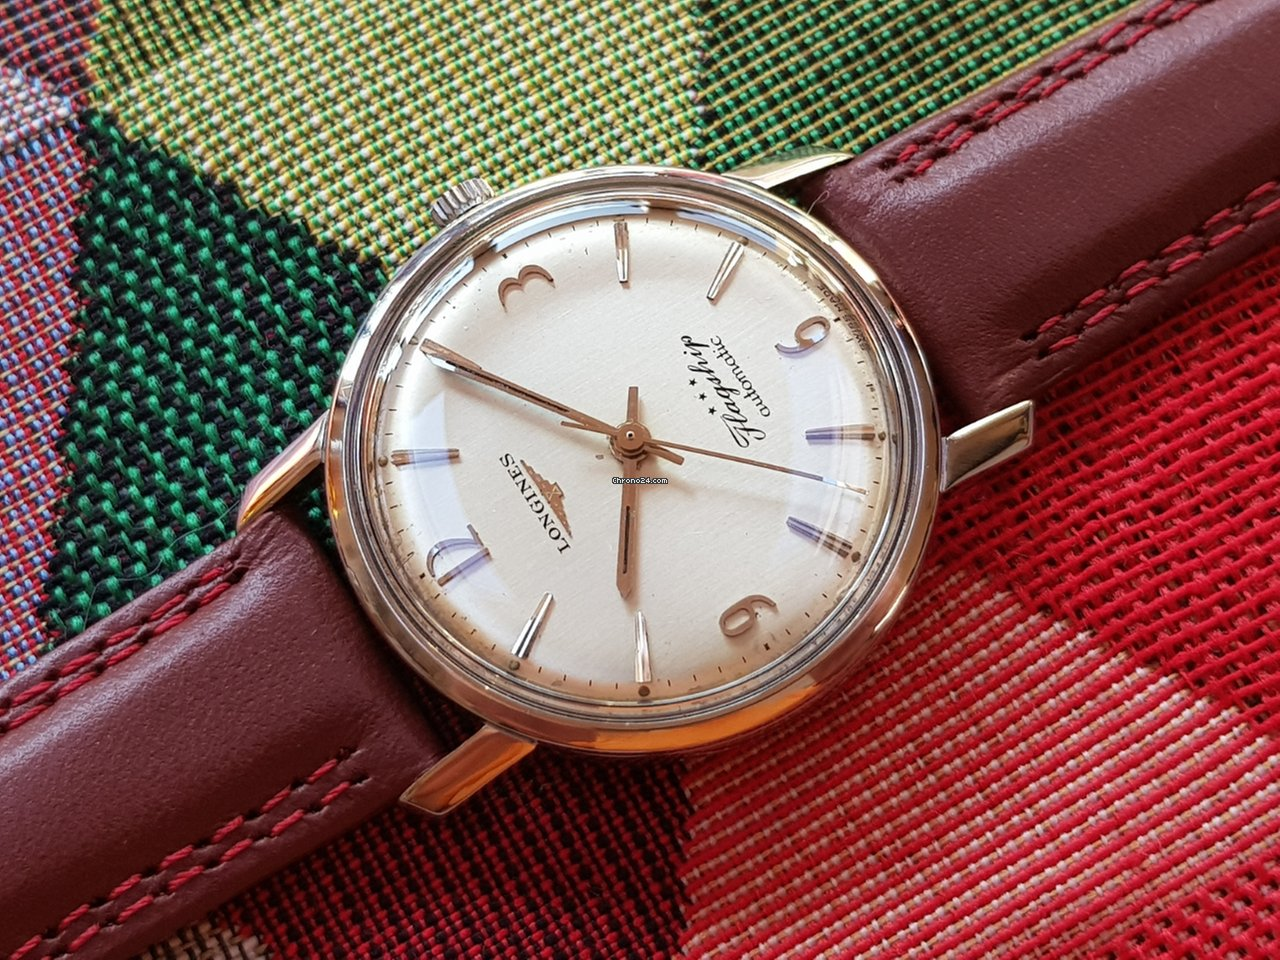 ffcc8366322 Longines Flagship Automatic with Archives Extract - cal 340... por 620 €  para vender por um Trusted Seller na Chrono24